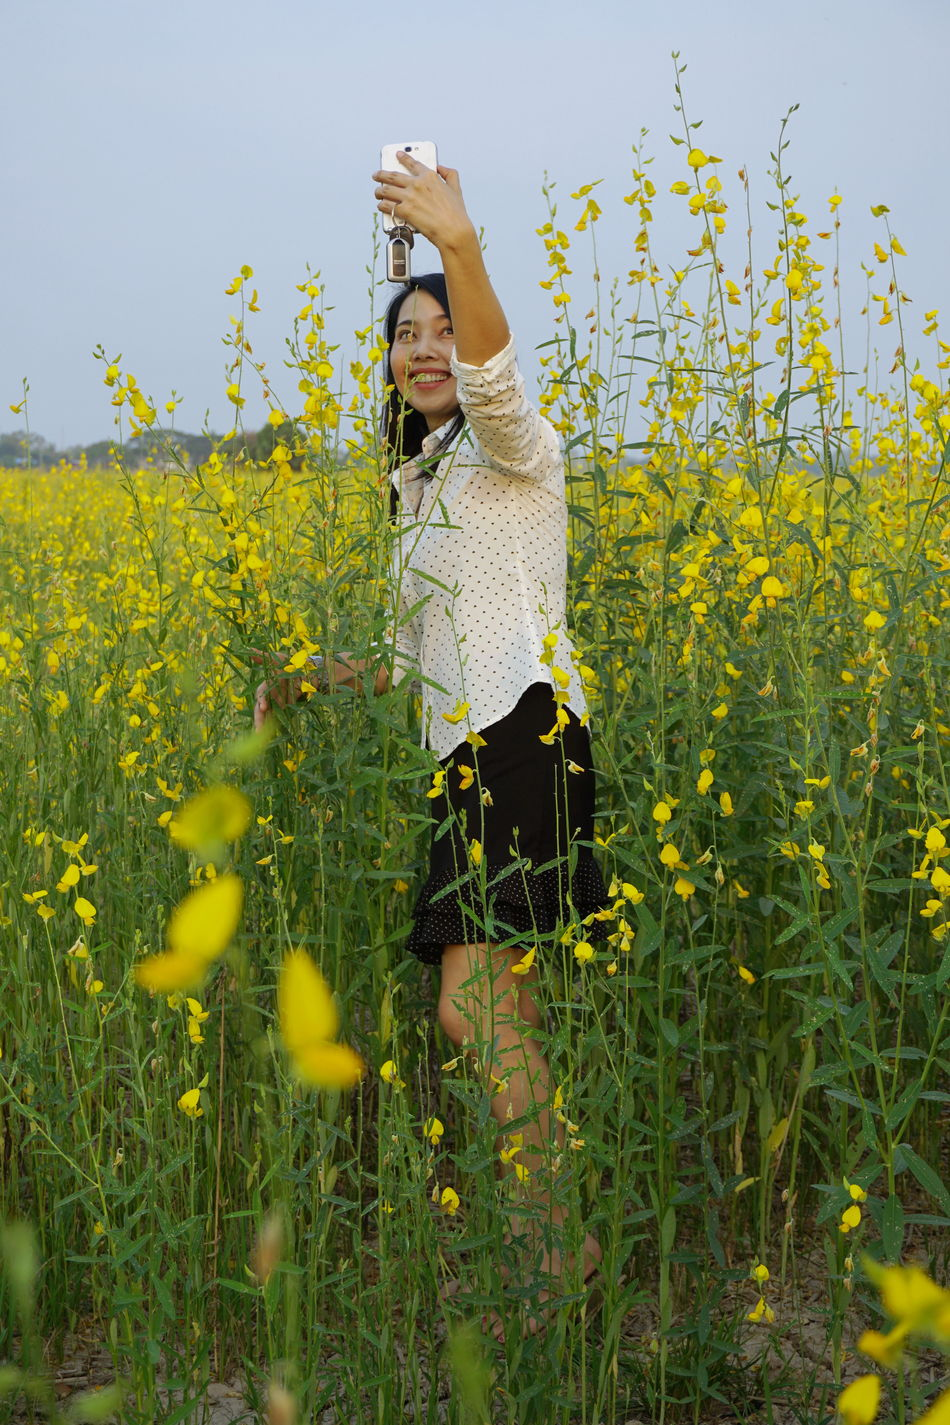 Adults Only Beauty In Nature Flower Happiness Landscape Nature One Woman Only Rural Scene Smiling